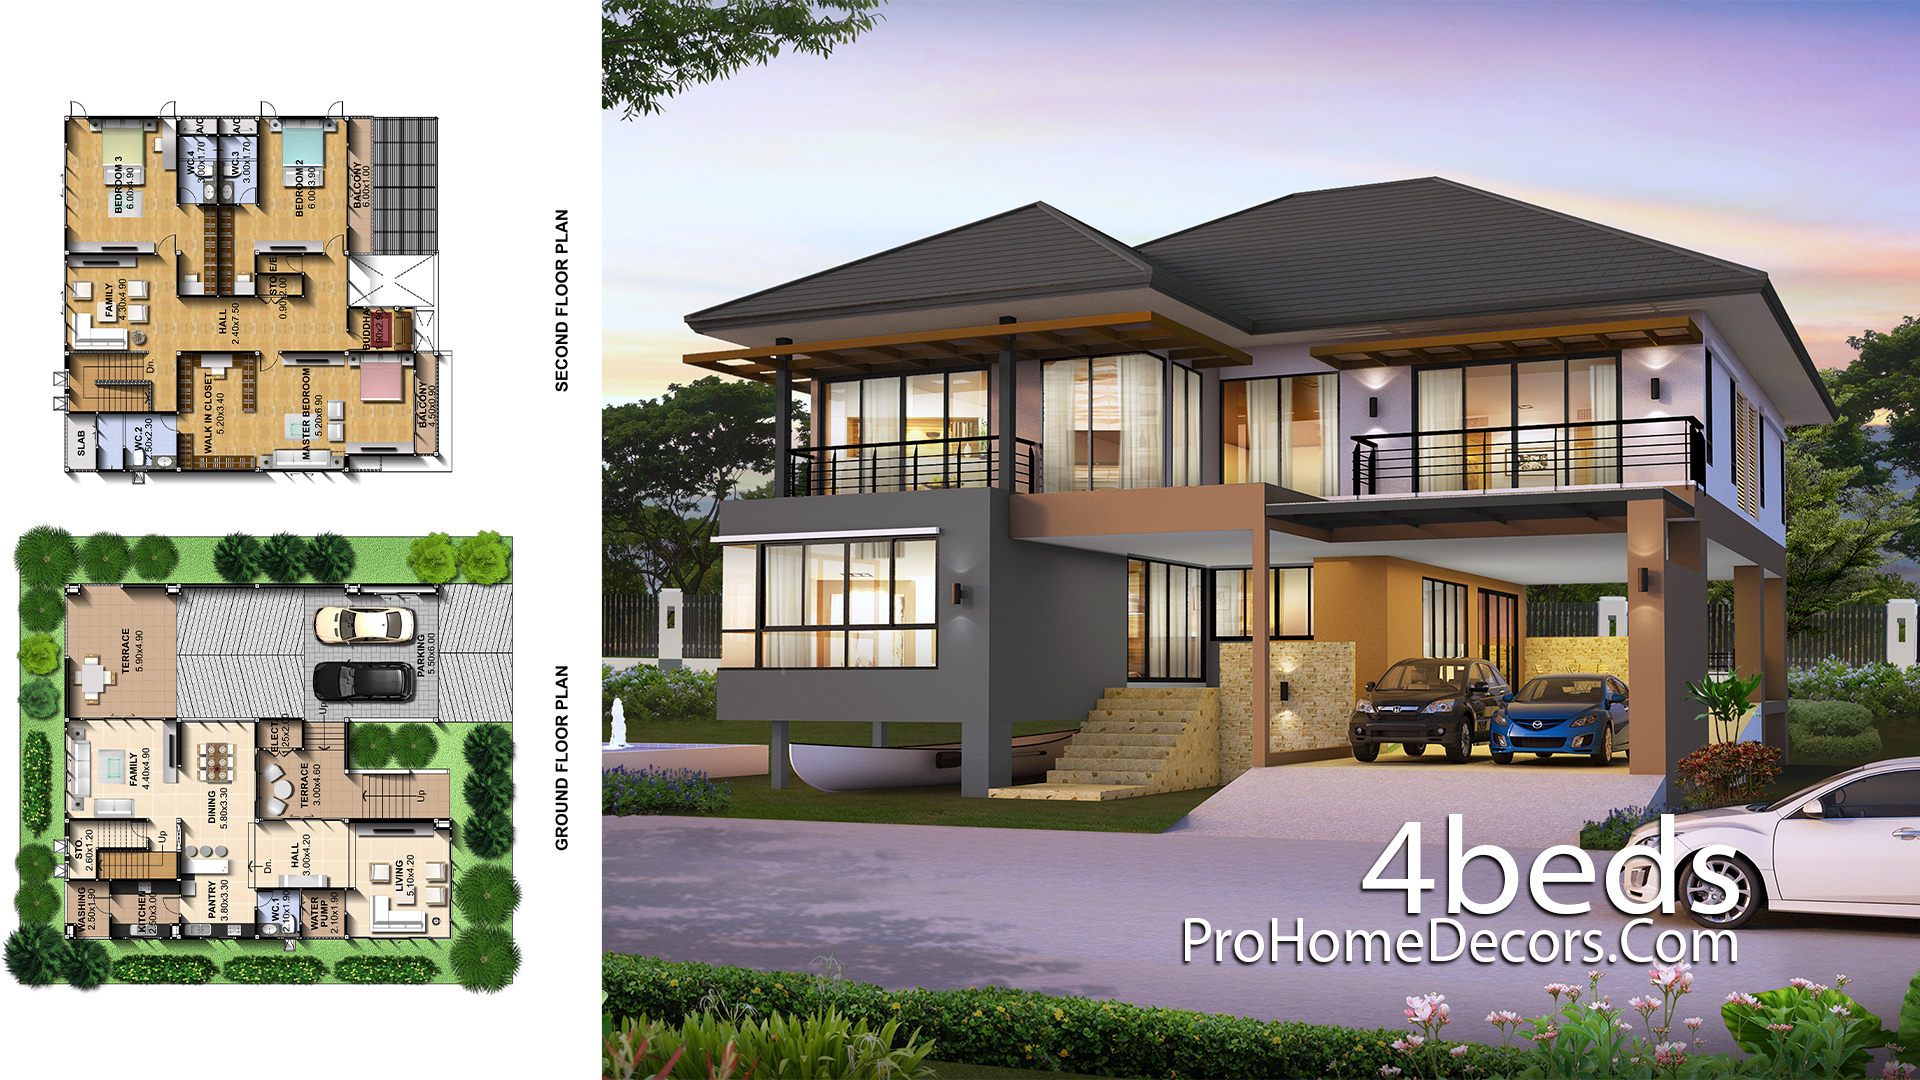 House Plans Idea 15x15 Meter with 3 Bedrooms